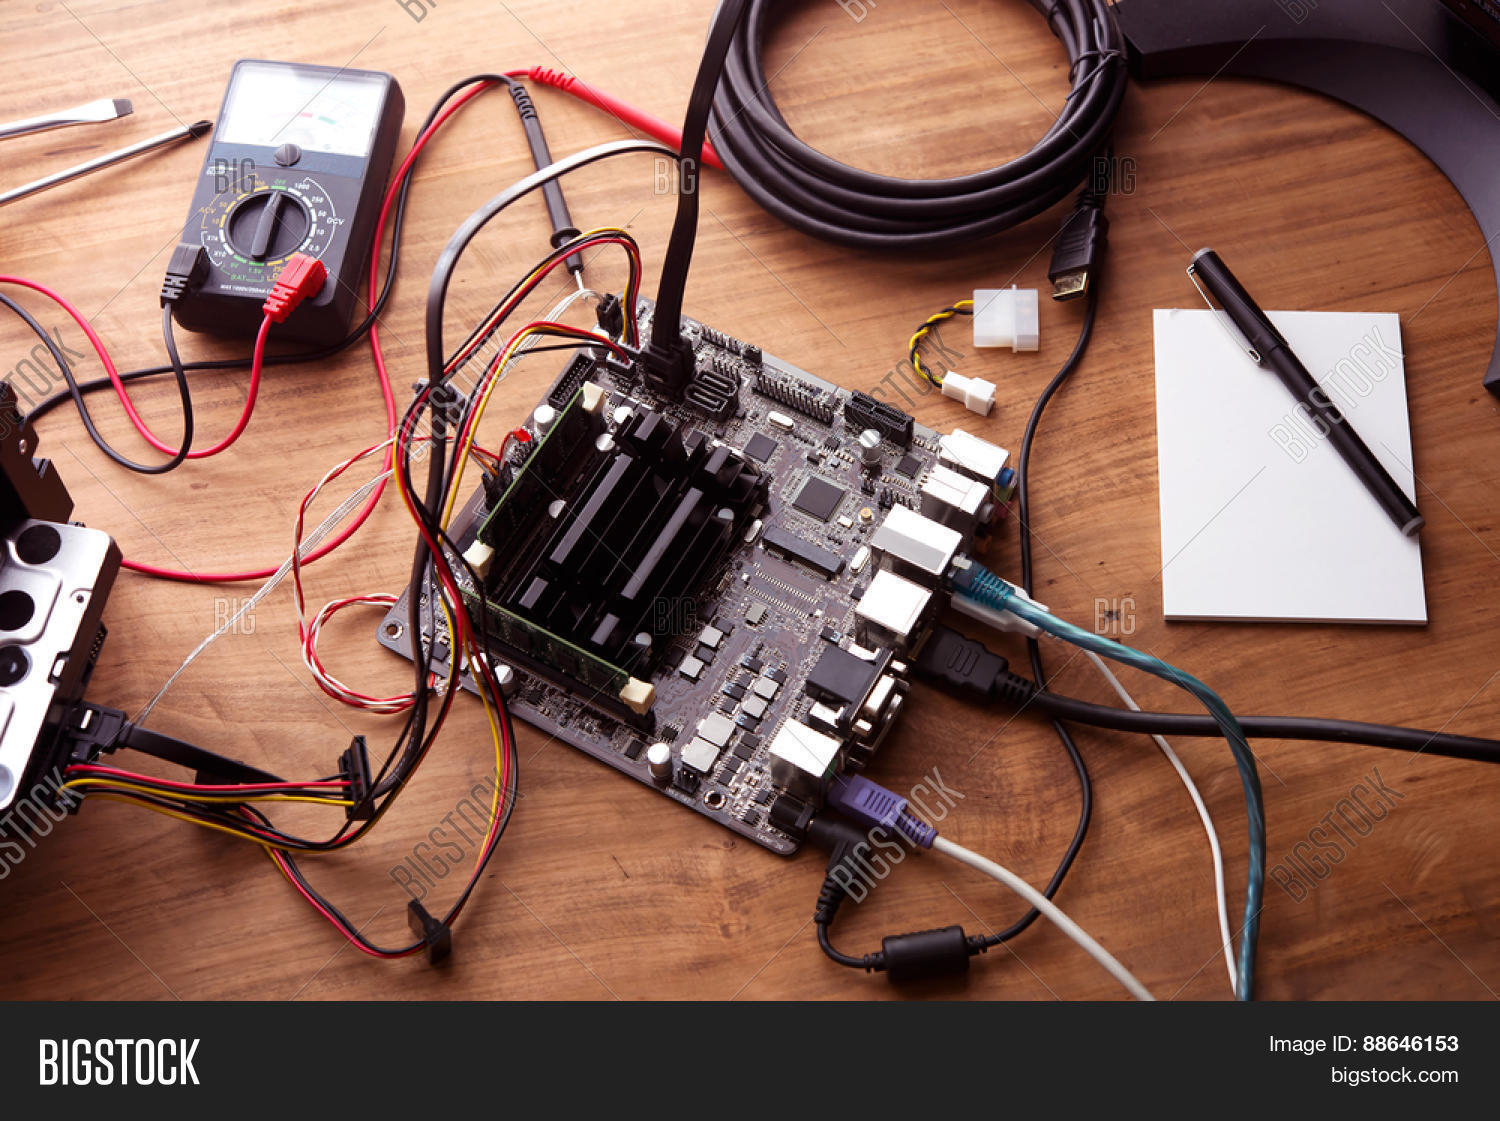 Electronic project prototype making image photo bigstock electronic project or prototype making bare computer circuit board hooked up on a work table greentooth Image collections